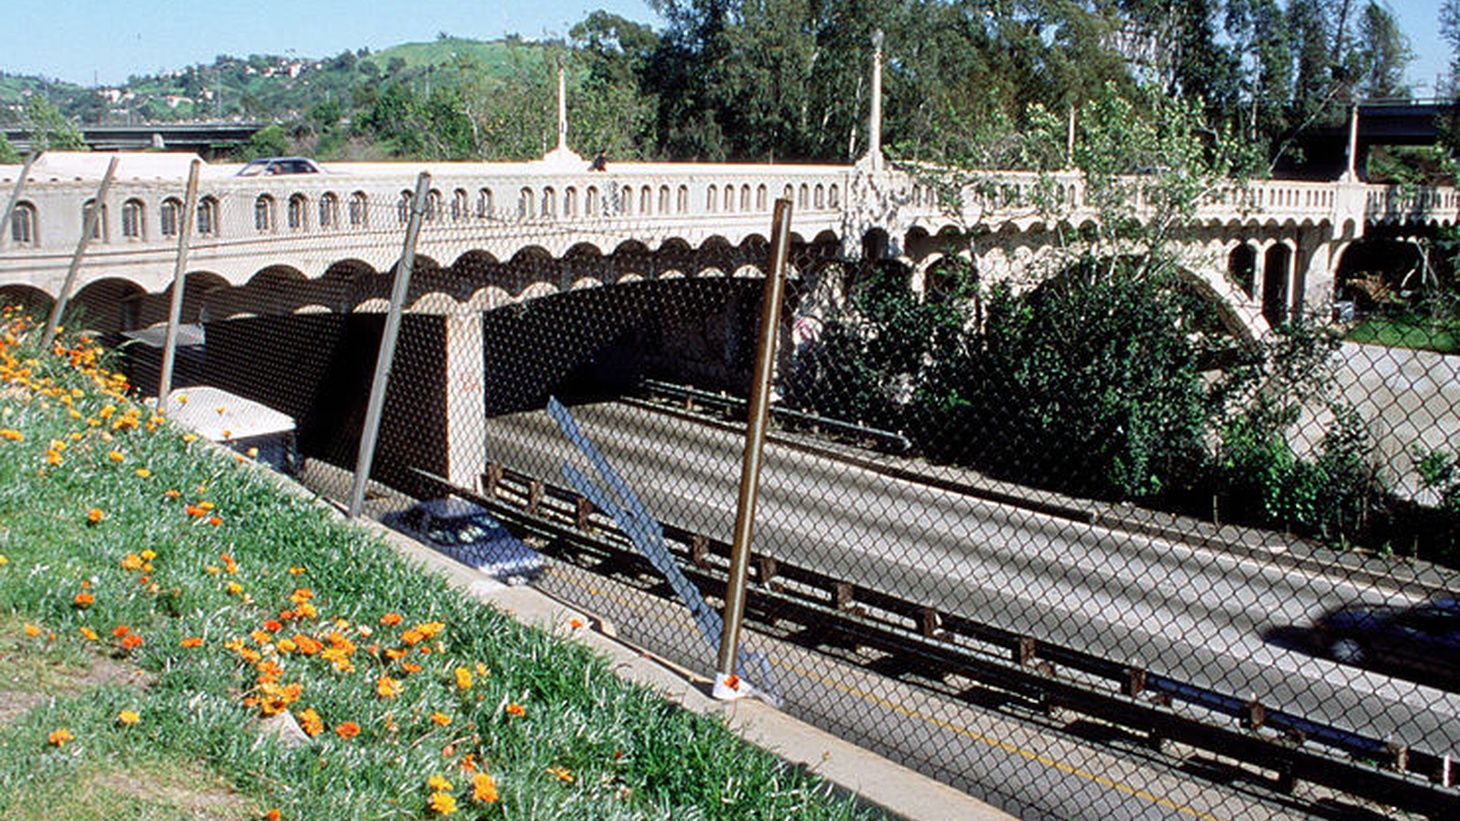 California's infrastructure is crumbling with a backlog of repairs estimated at $130 billion. Why has the state fallen so far behind when it's one of the top economies in the world?